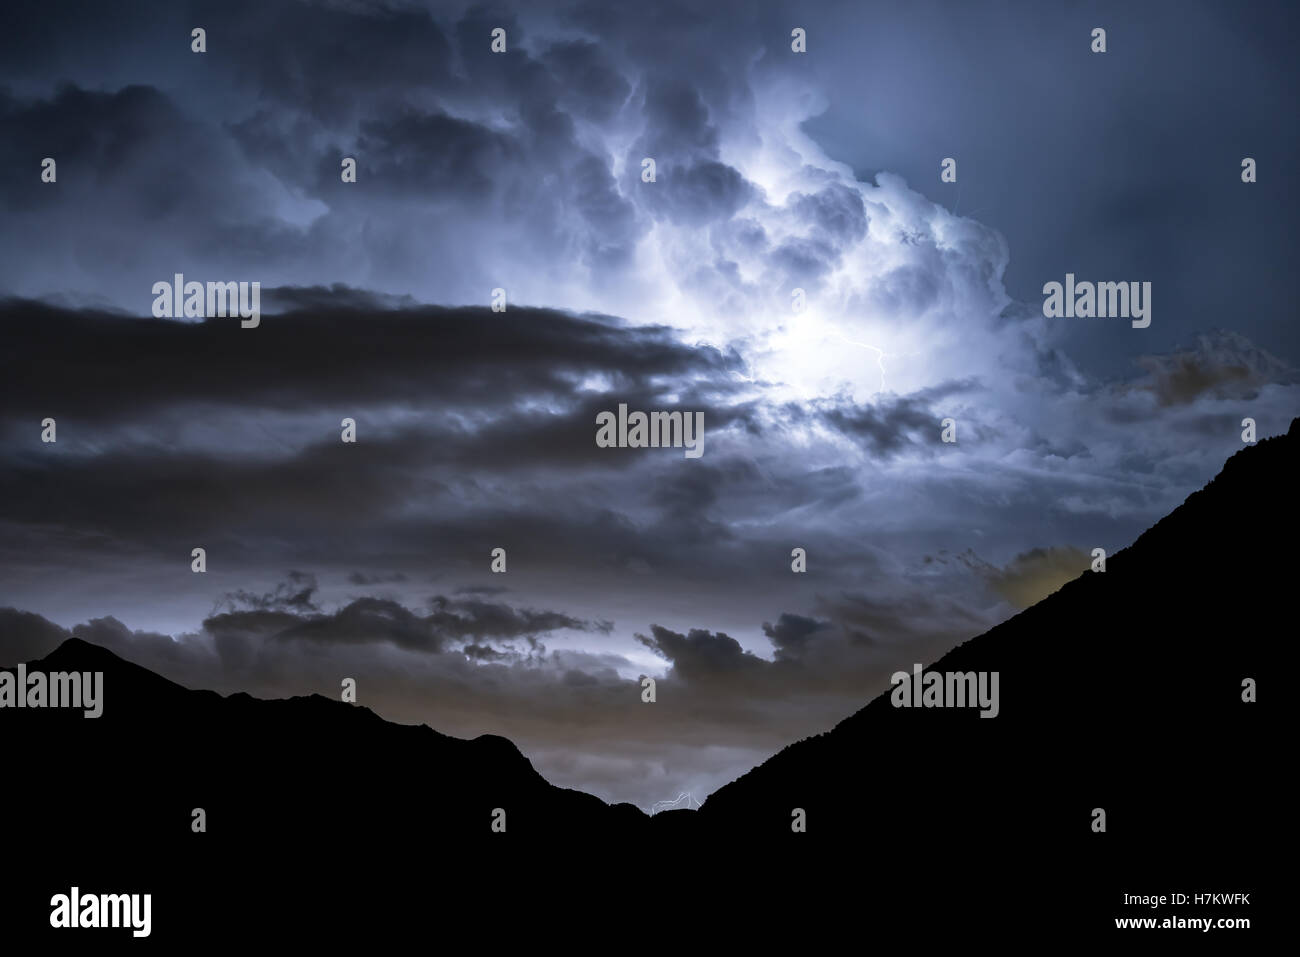 Lightning storm, St Vincent, Aosta valley, Italy, Alps, Europe, EU Stock Photo